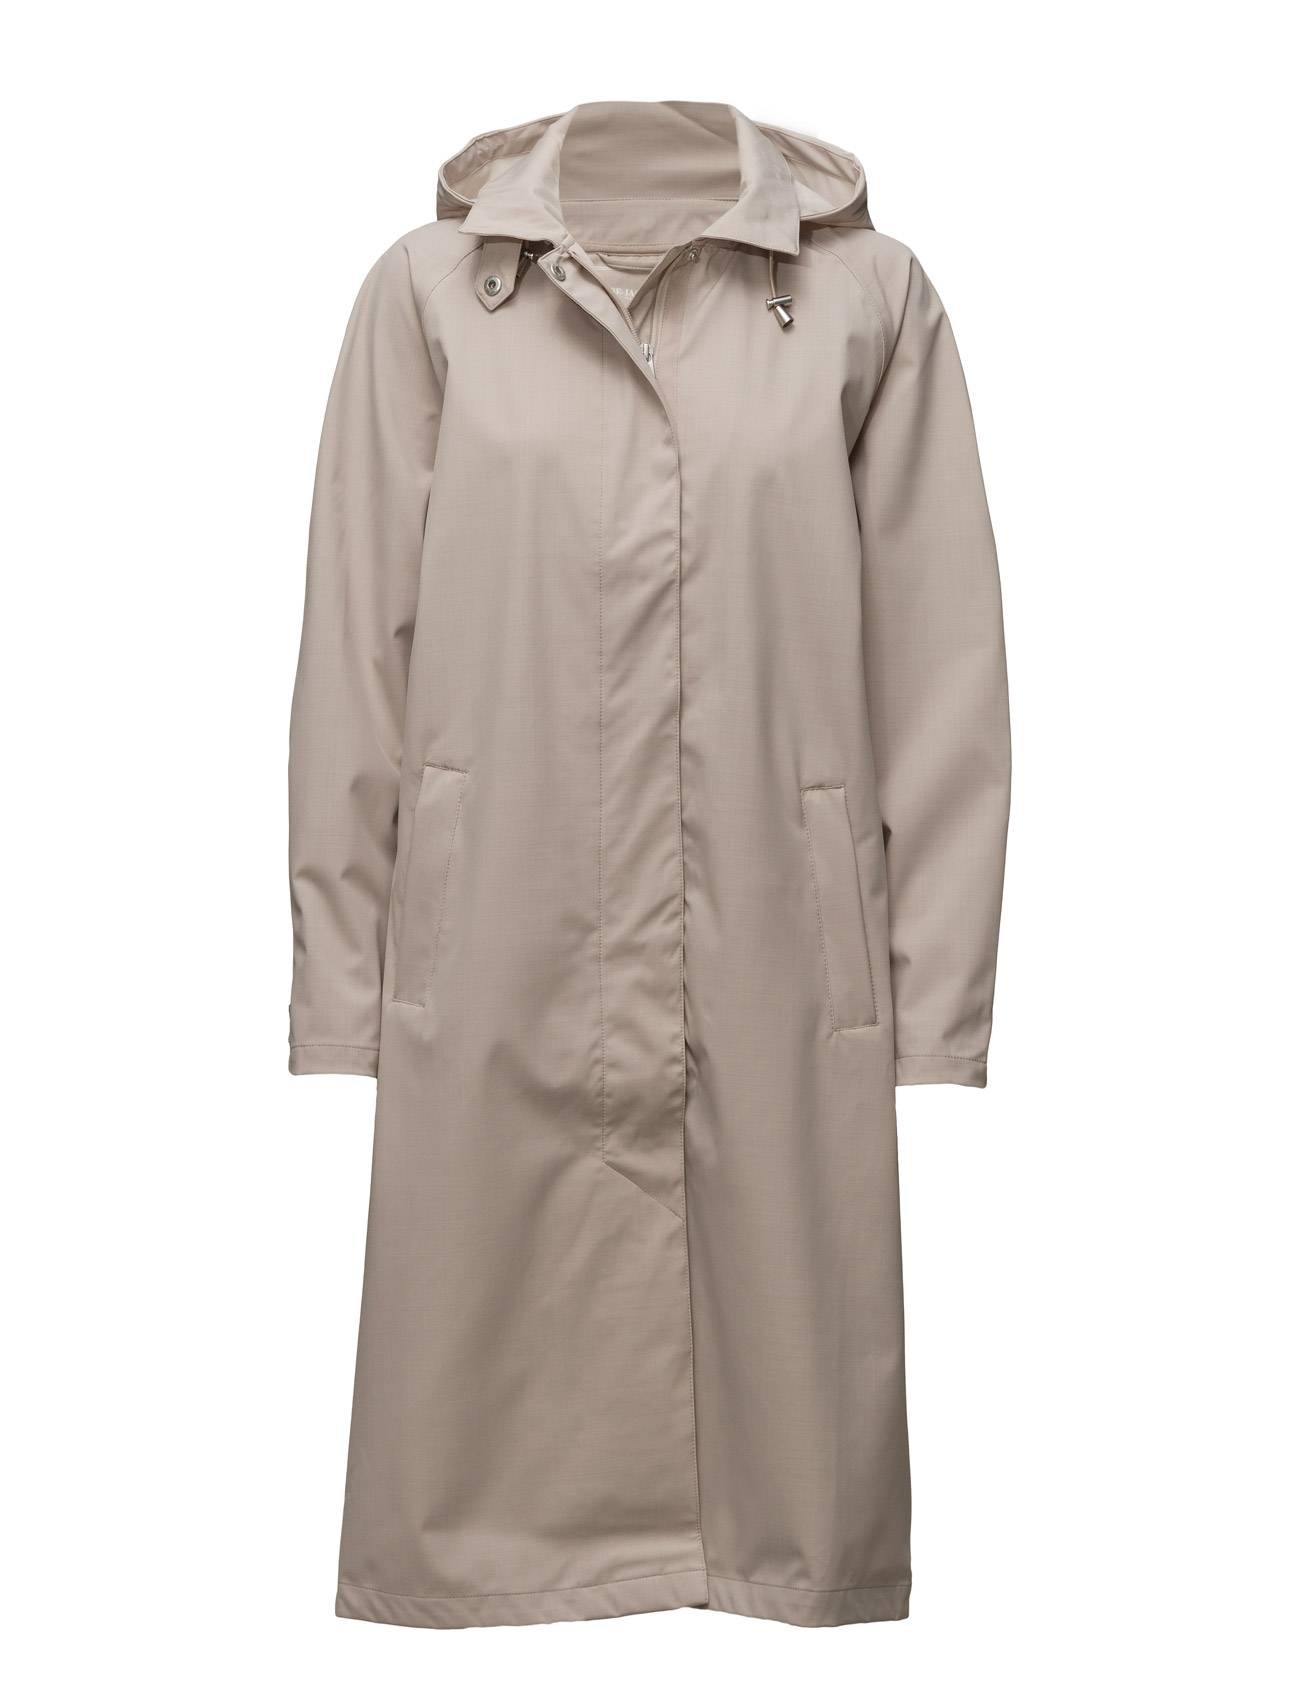 Ilse Jacobsen Womans Rain Coat